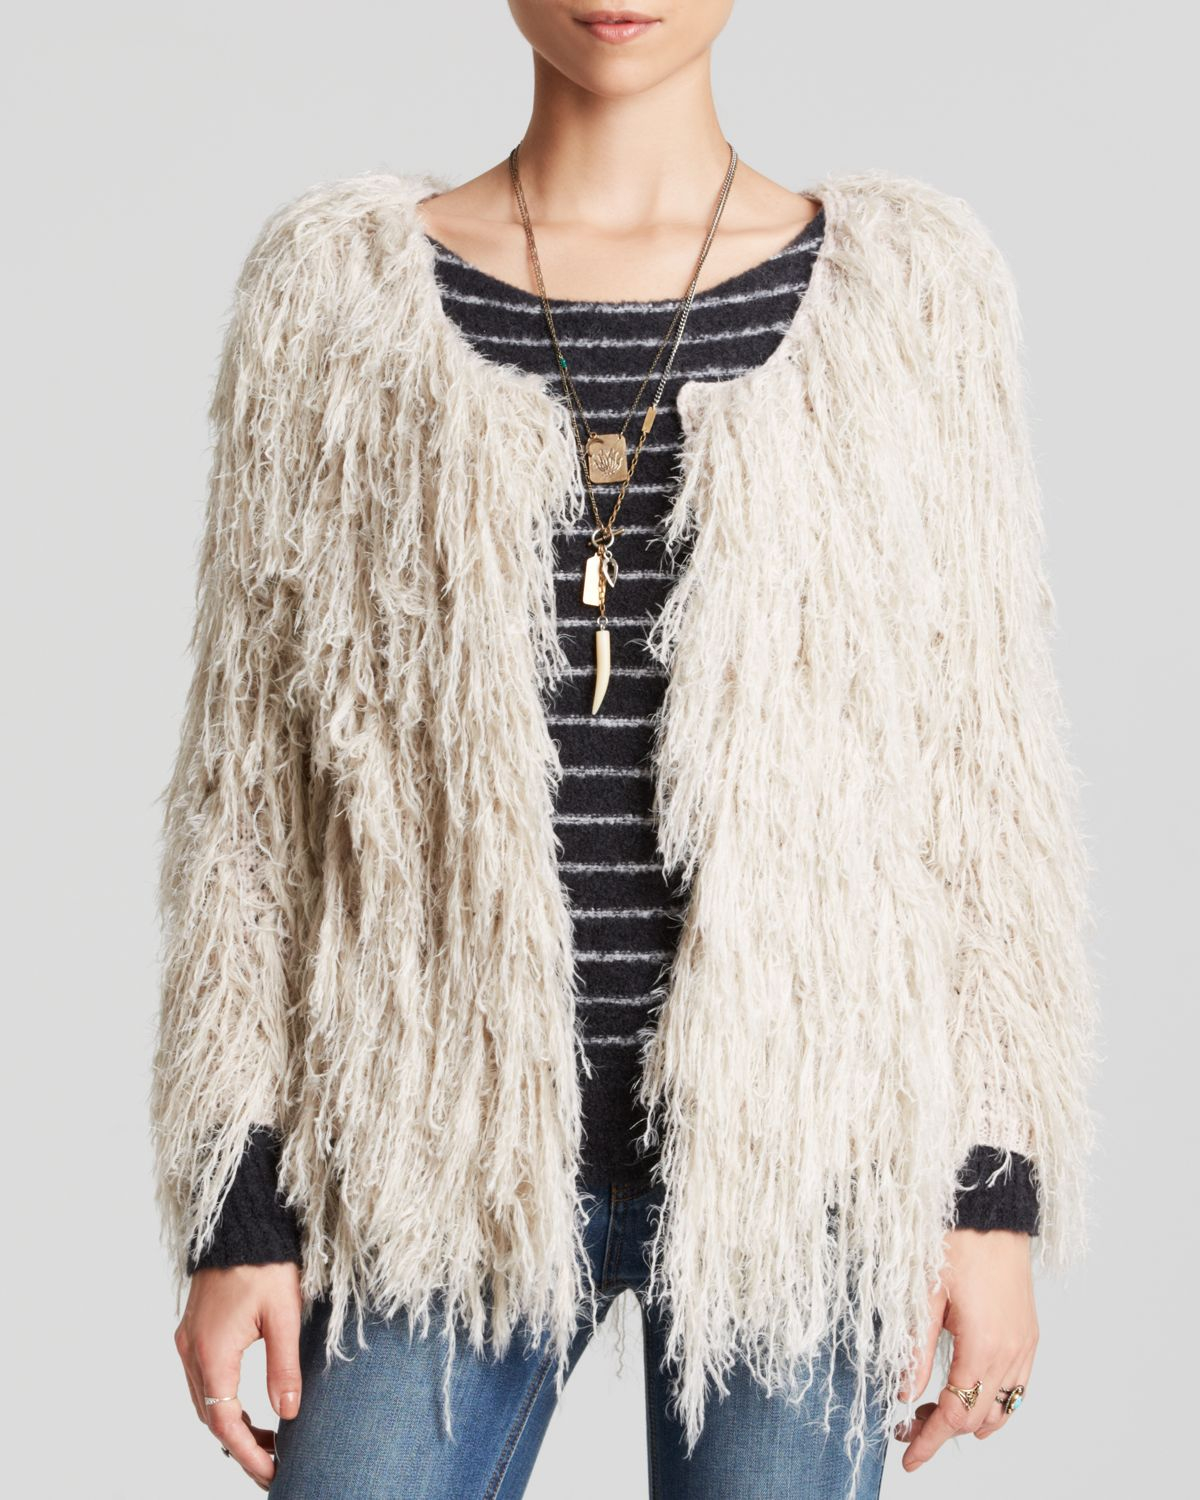 507c7956fb1c8e Free People Cardigan - Faithful Shaggy in Natural - Lyst